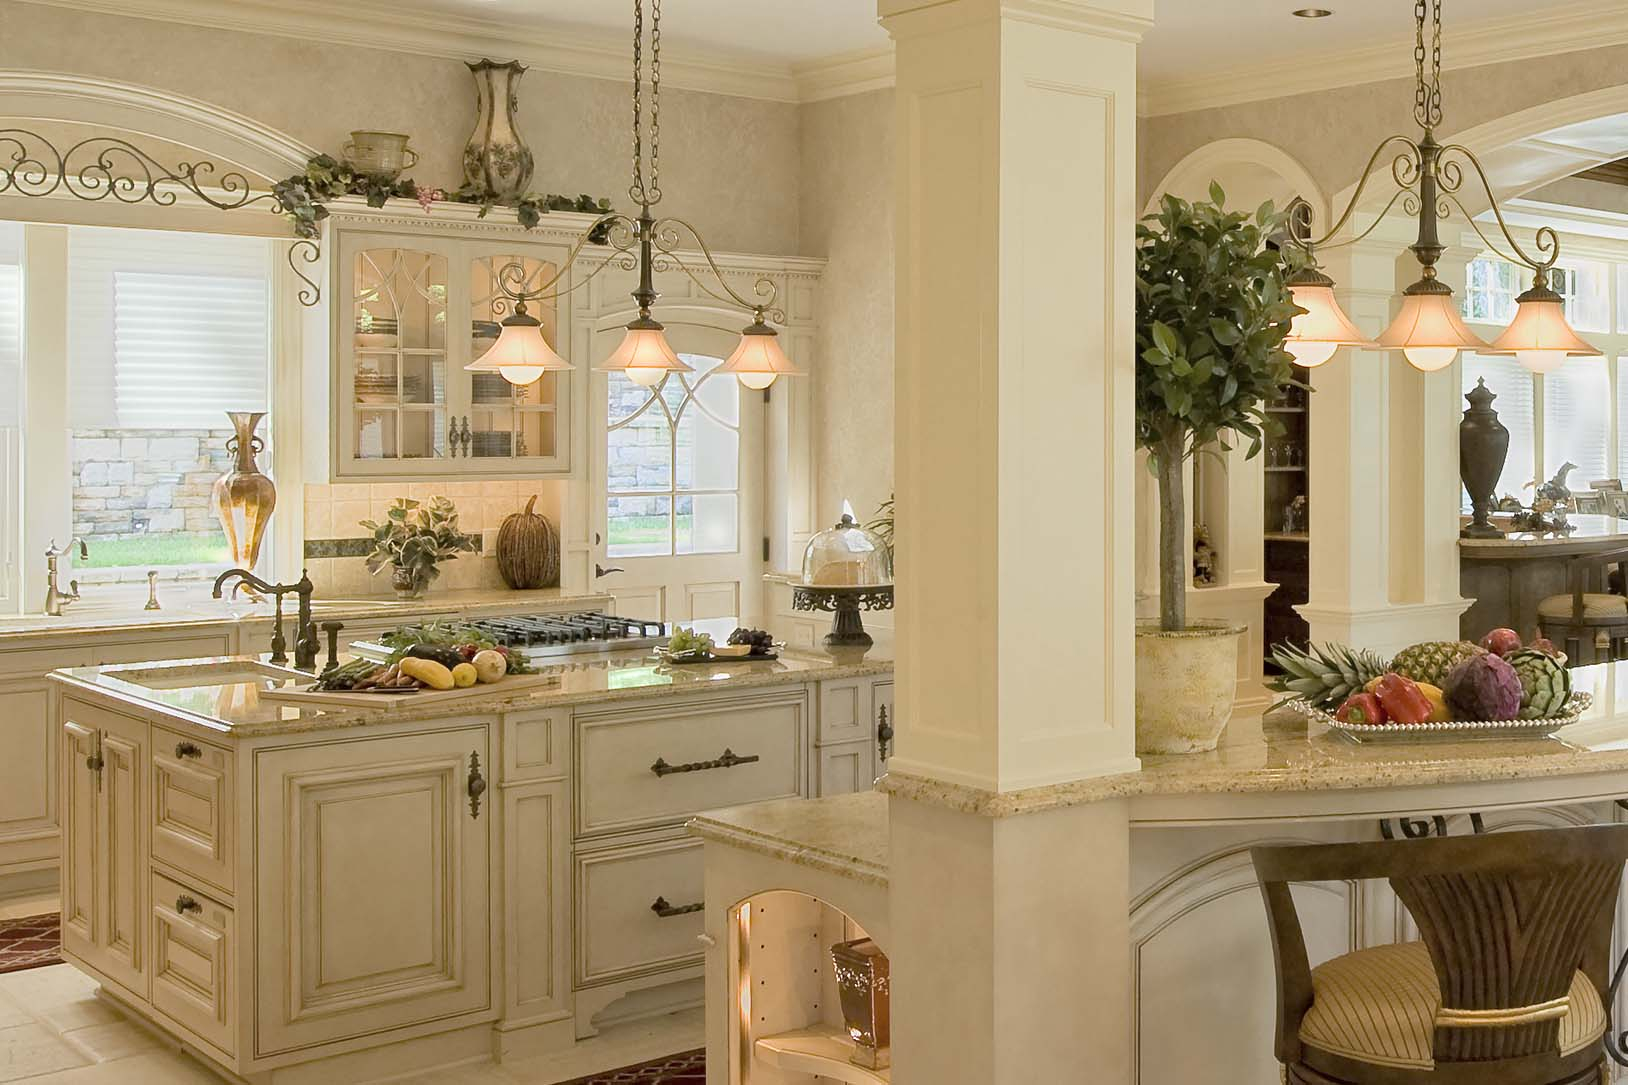 Epic French Colonial Kitchen Amusing Colonial Kitchen - Home Design Ideas for Beautiful Colonial Kitchen Design